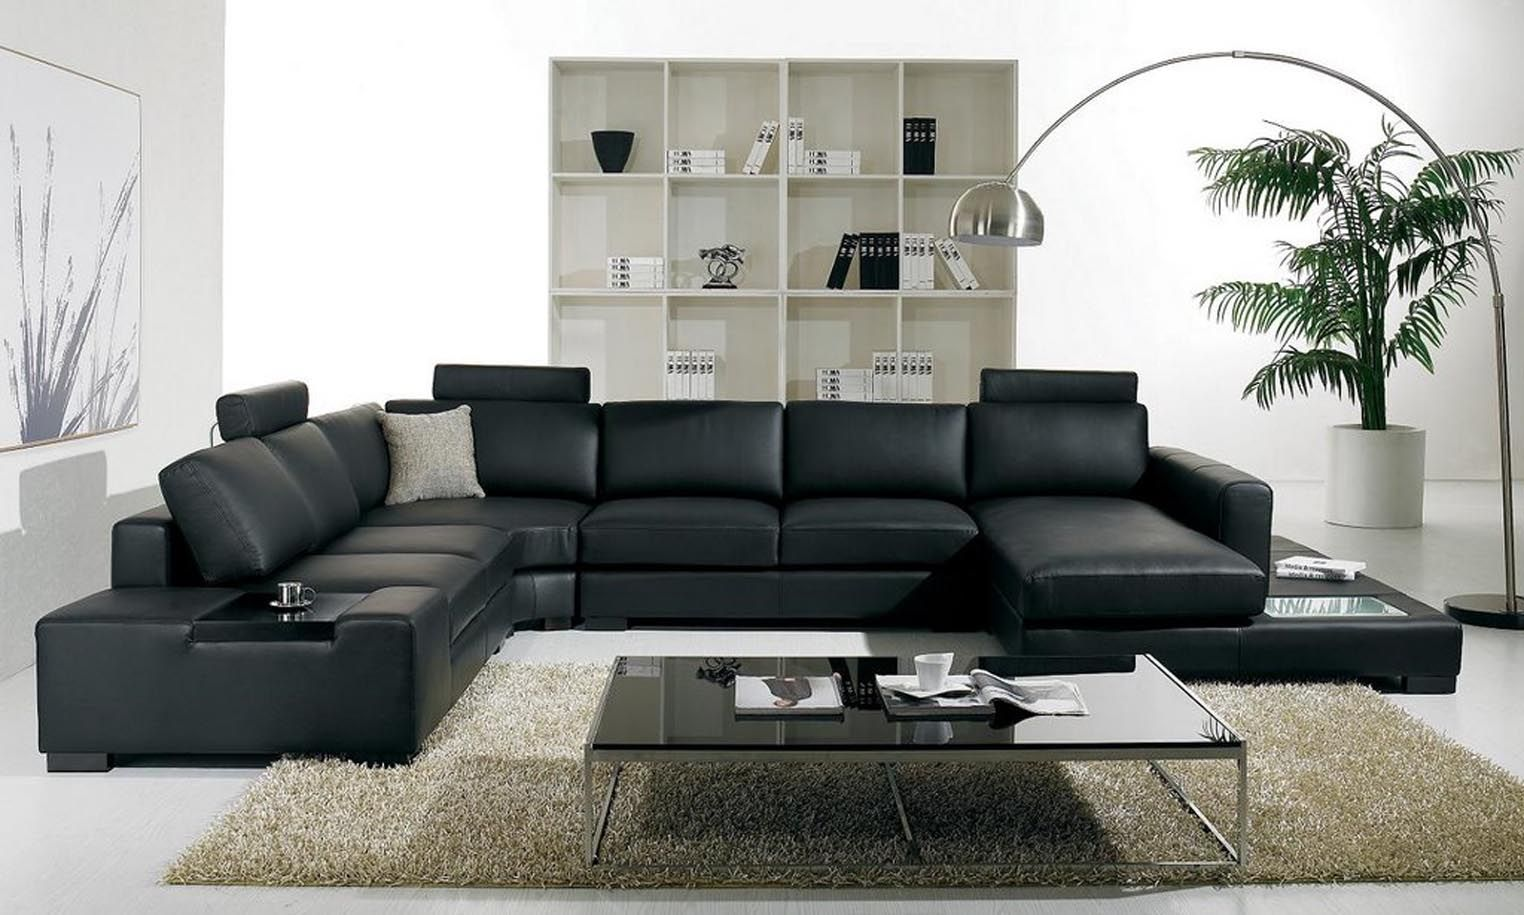 Simple In Modern Living Room Sets Uses Black Leather Sofa Gl Coffee Table And Curve Standing Lamp Pictures Photos Images